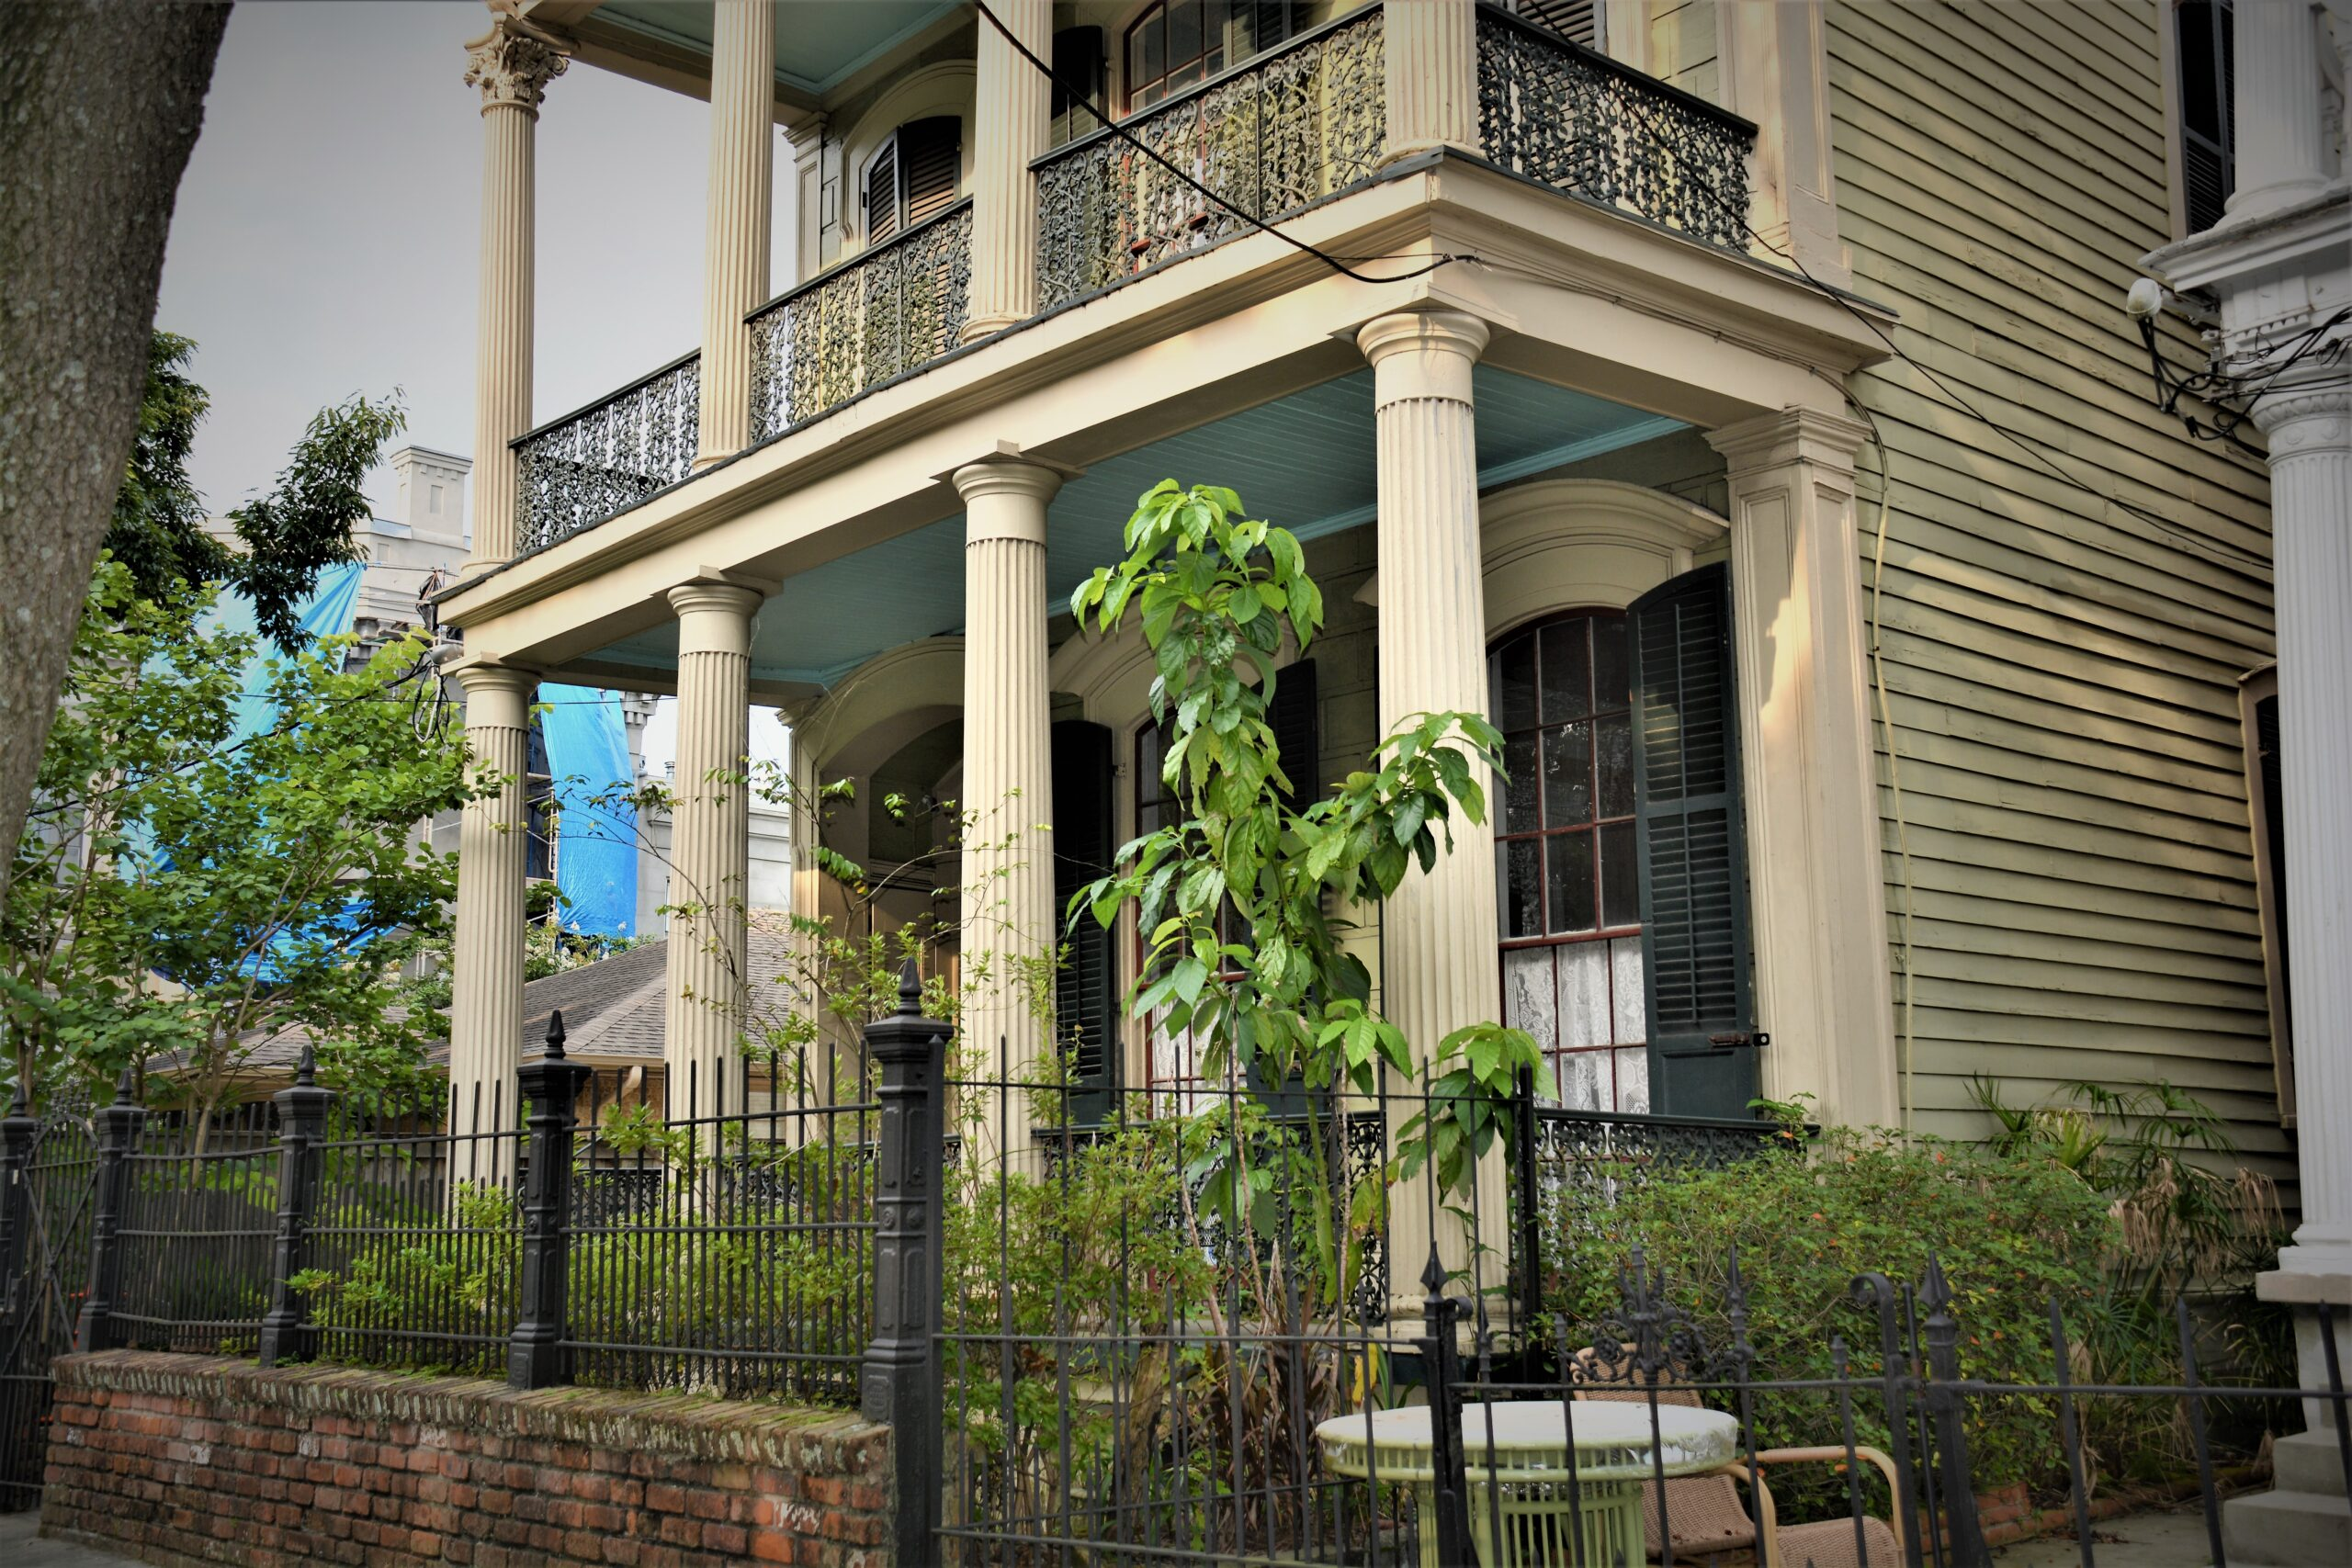 Doric columns on a mansion in the Garden District of New Orleans